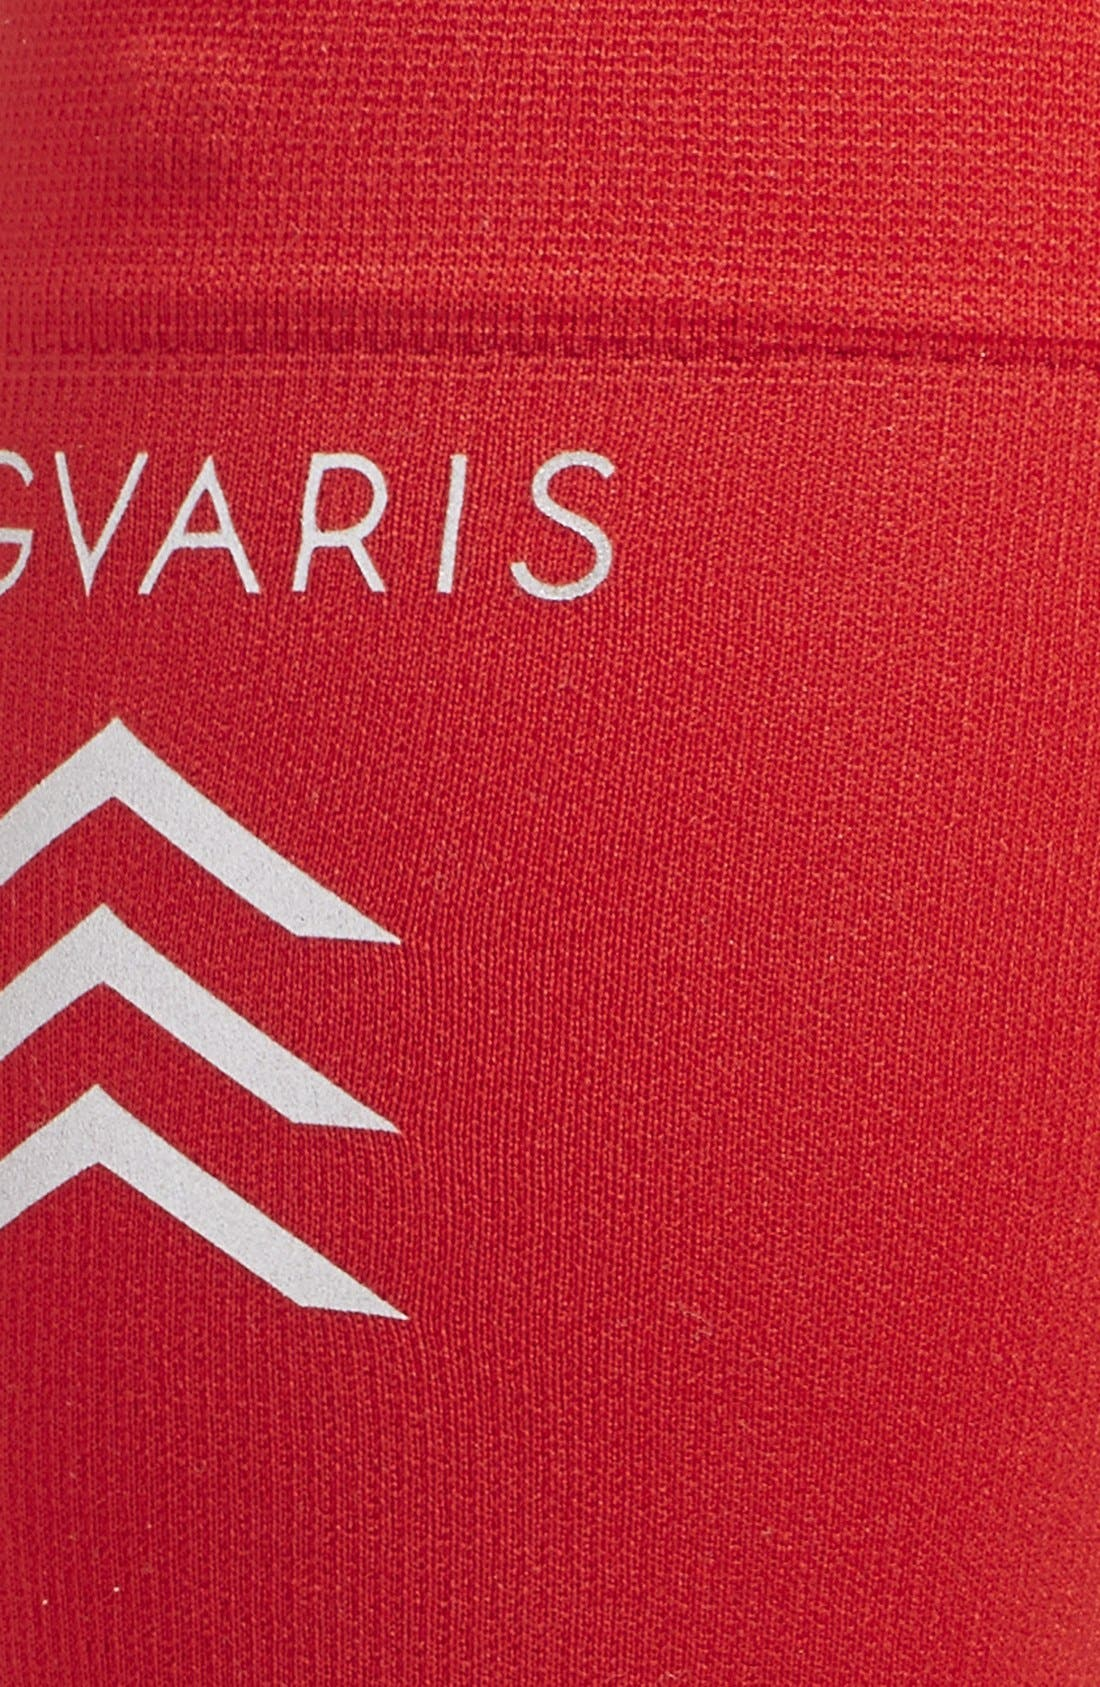 Alternate Image 3  - INSIGNIA by SIGVARIS 'Sports' Graduated Compression Performance Calf Sleeve